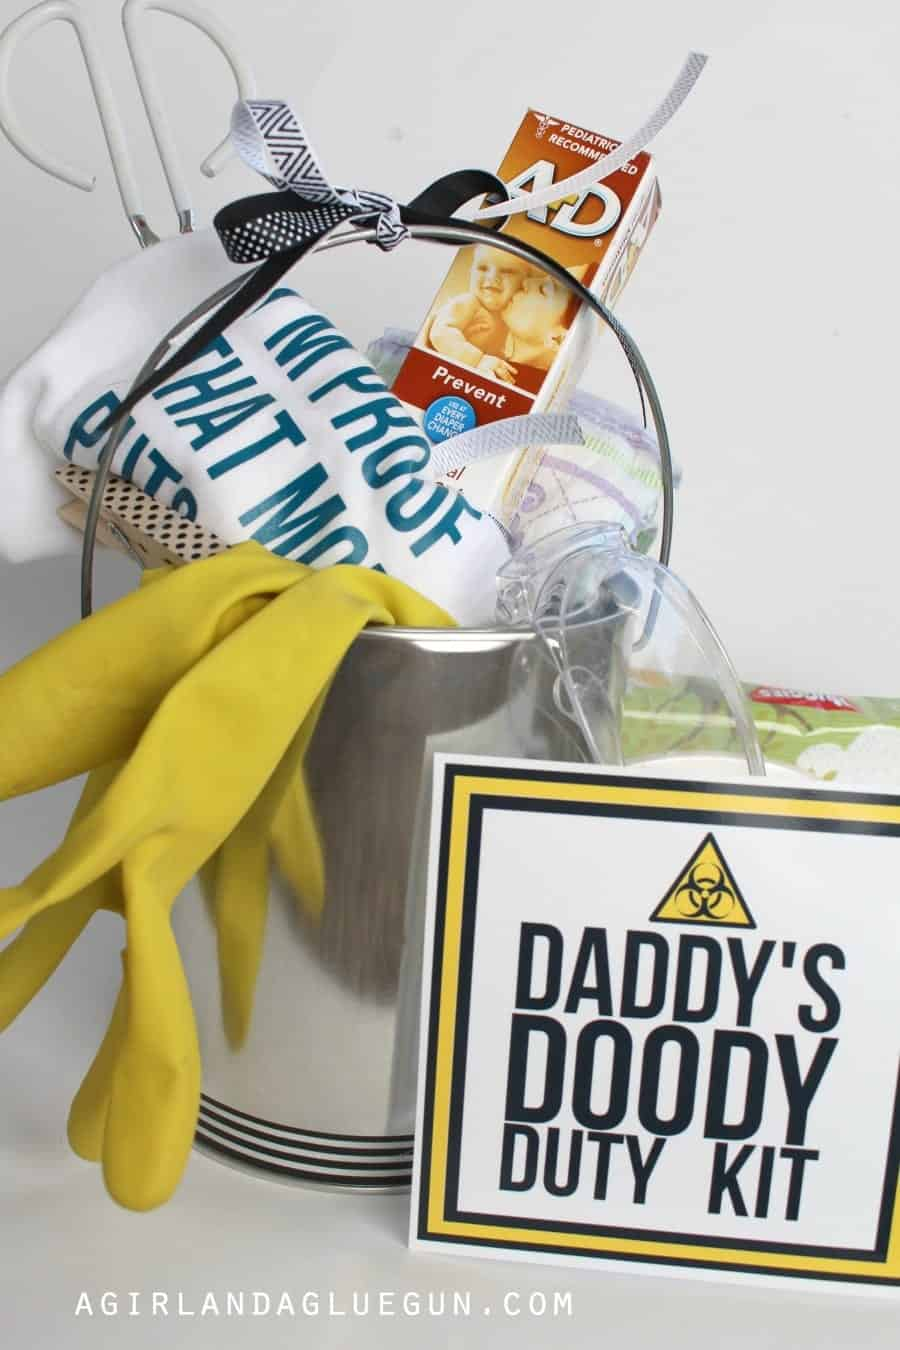 Funny baby shower gift daddy doody duty kit a girl and a glue gun fun baby shower gift daddys doody duty kit negle Choice Image